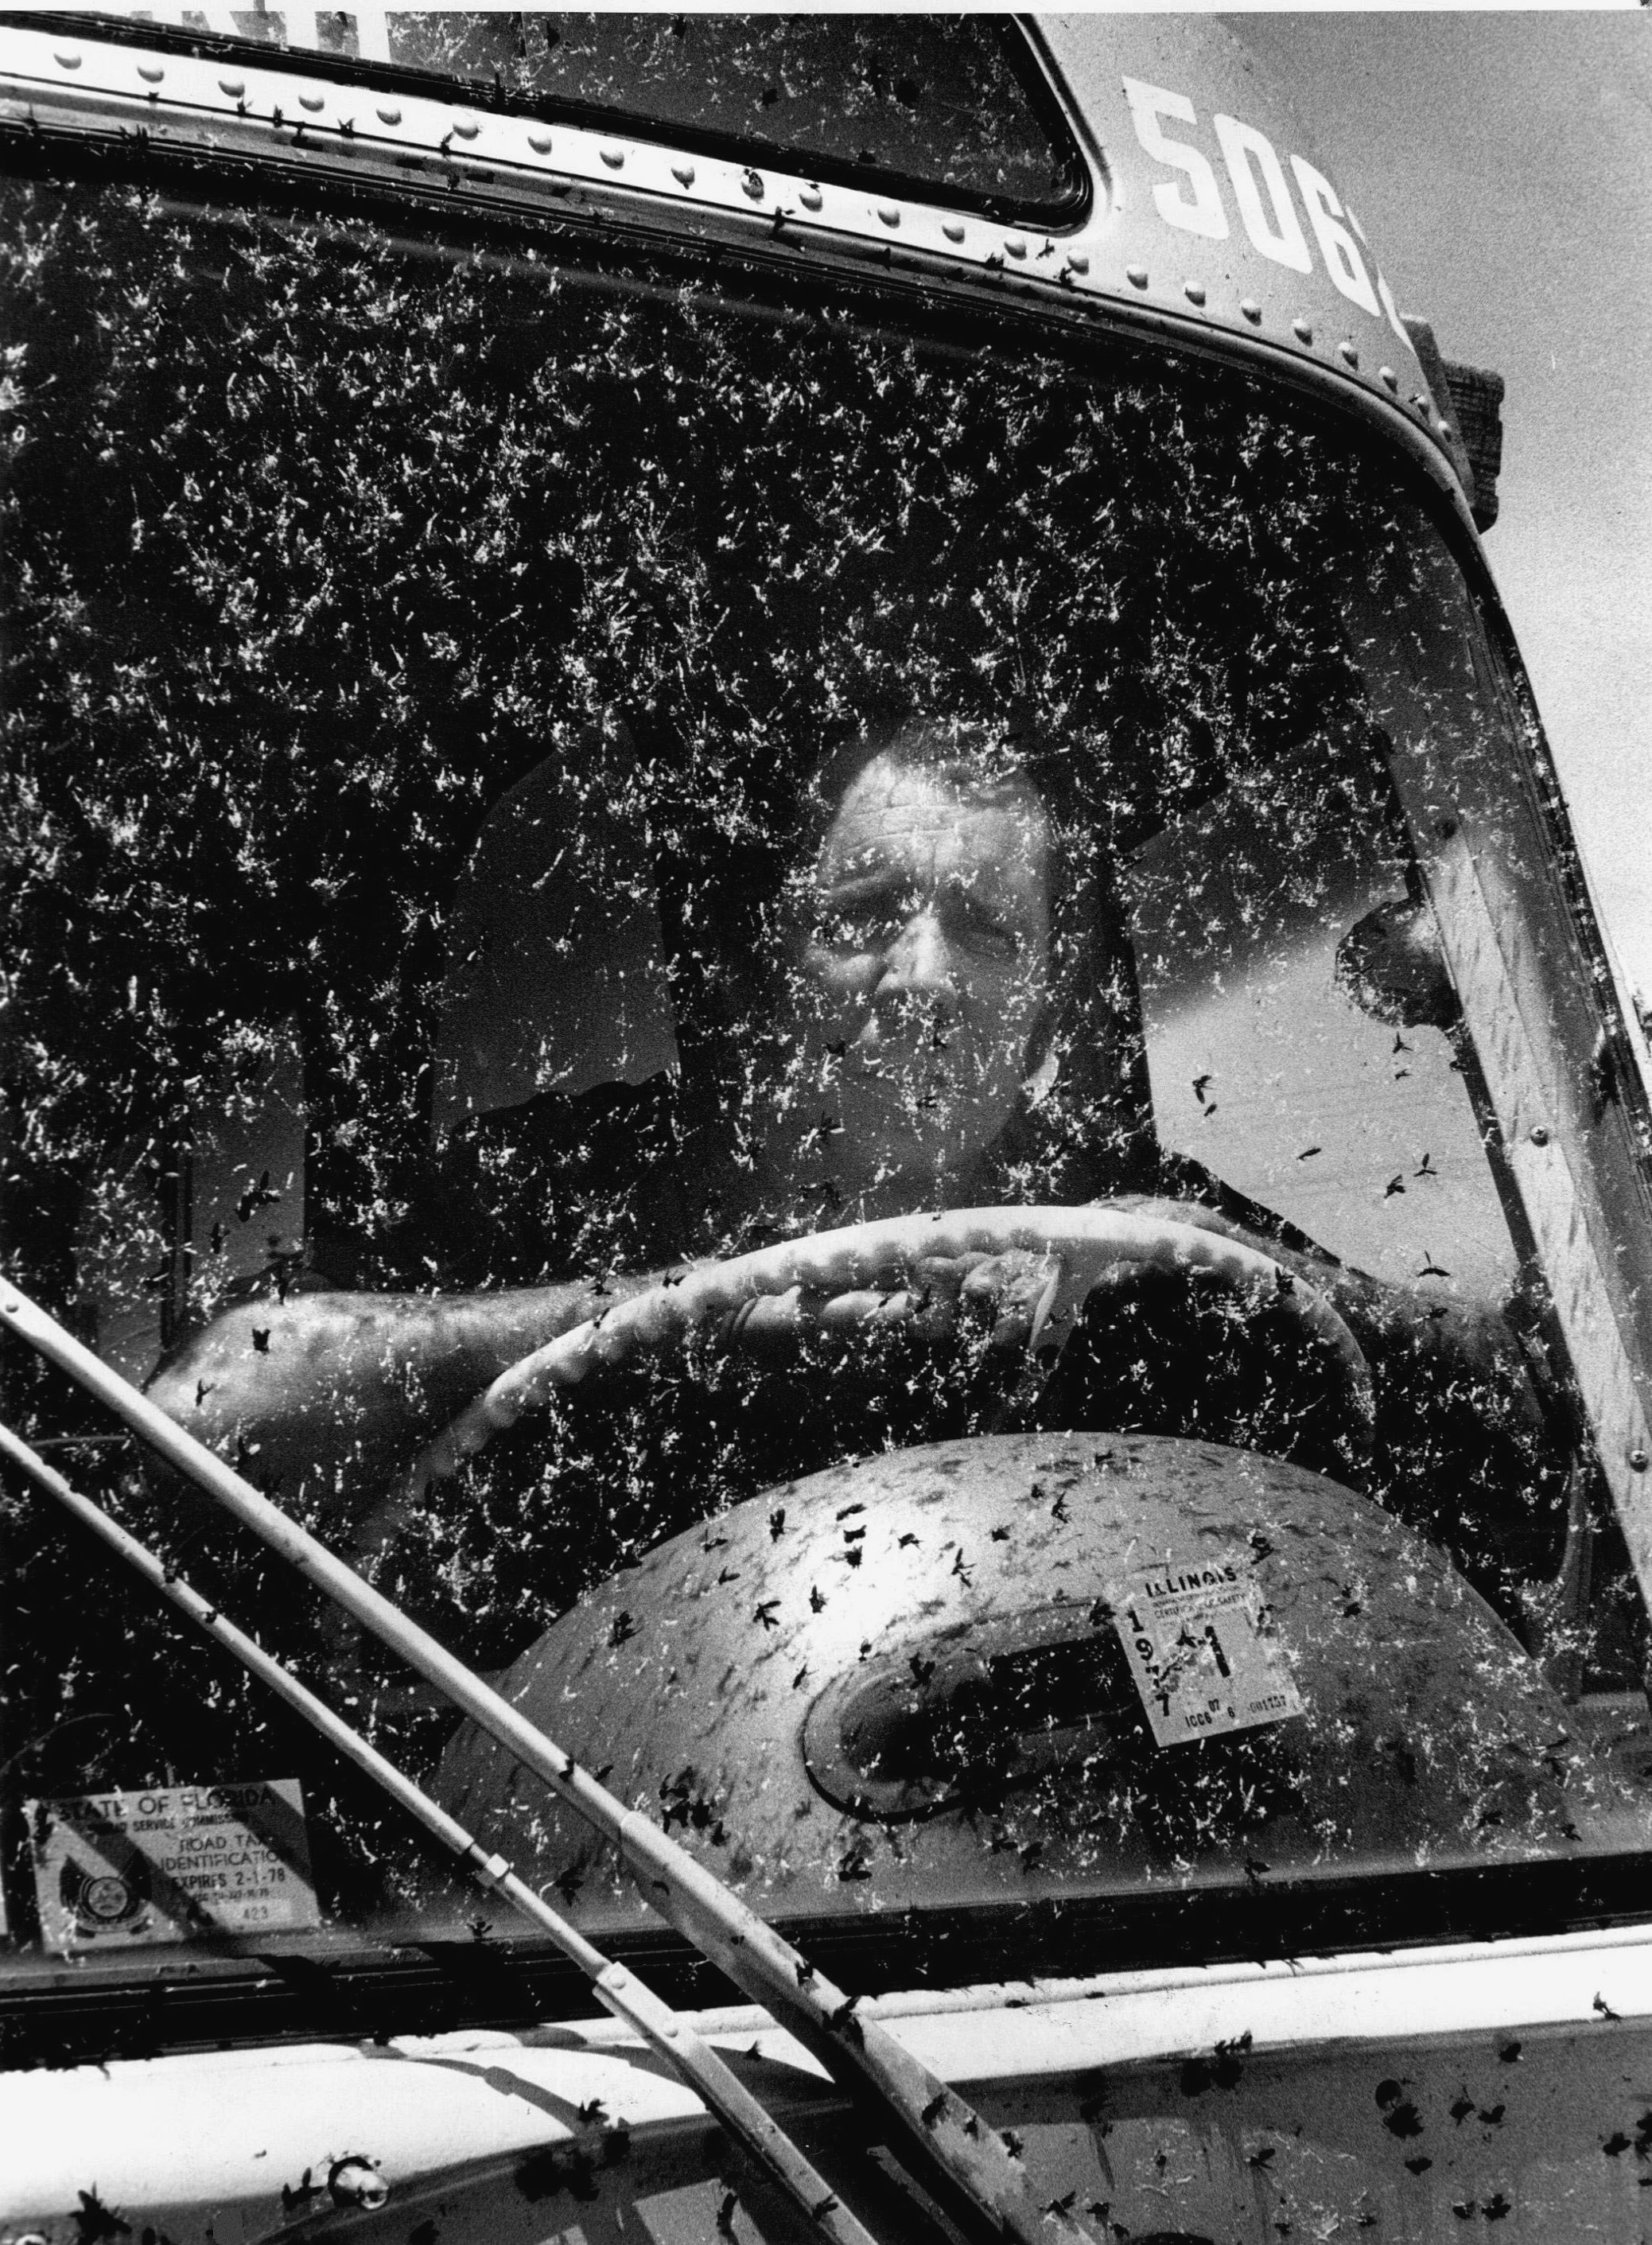 Think lovebugs are bad now? They once caused a public safety